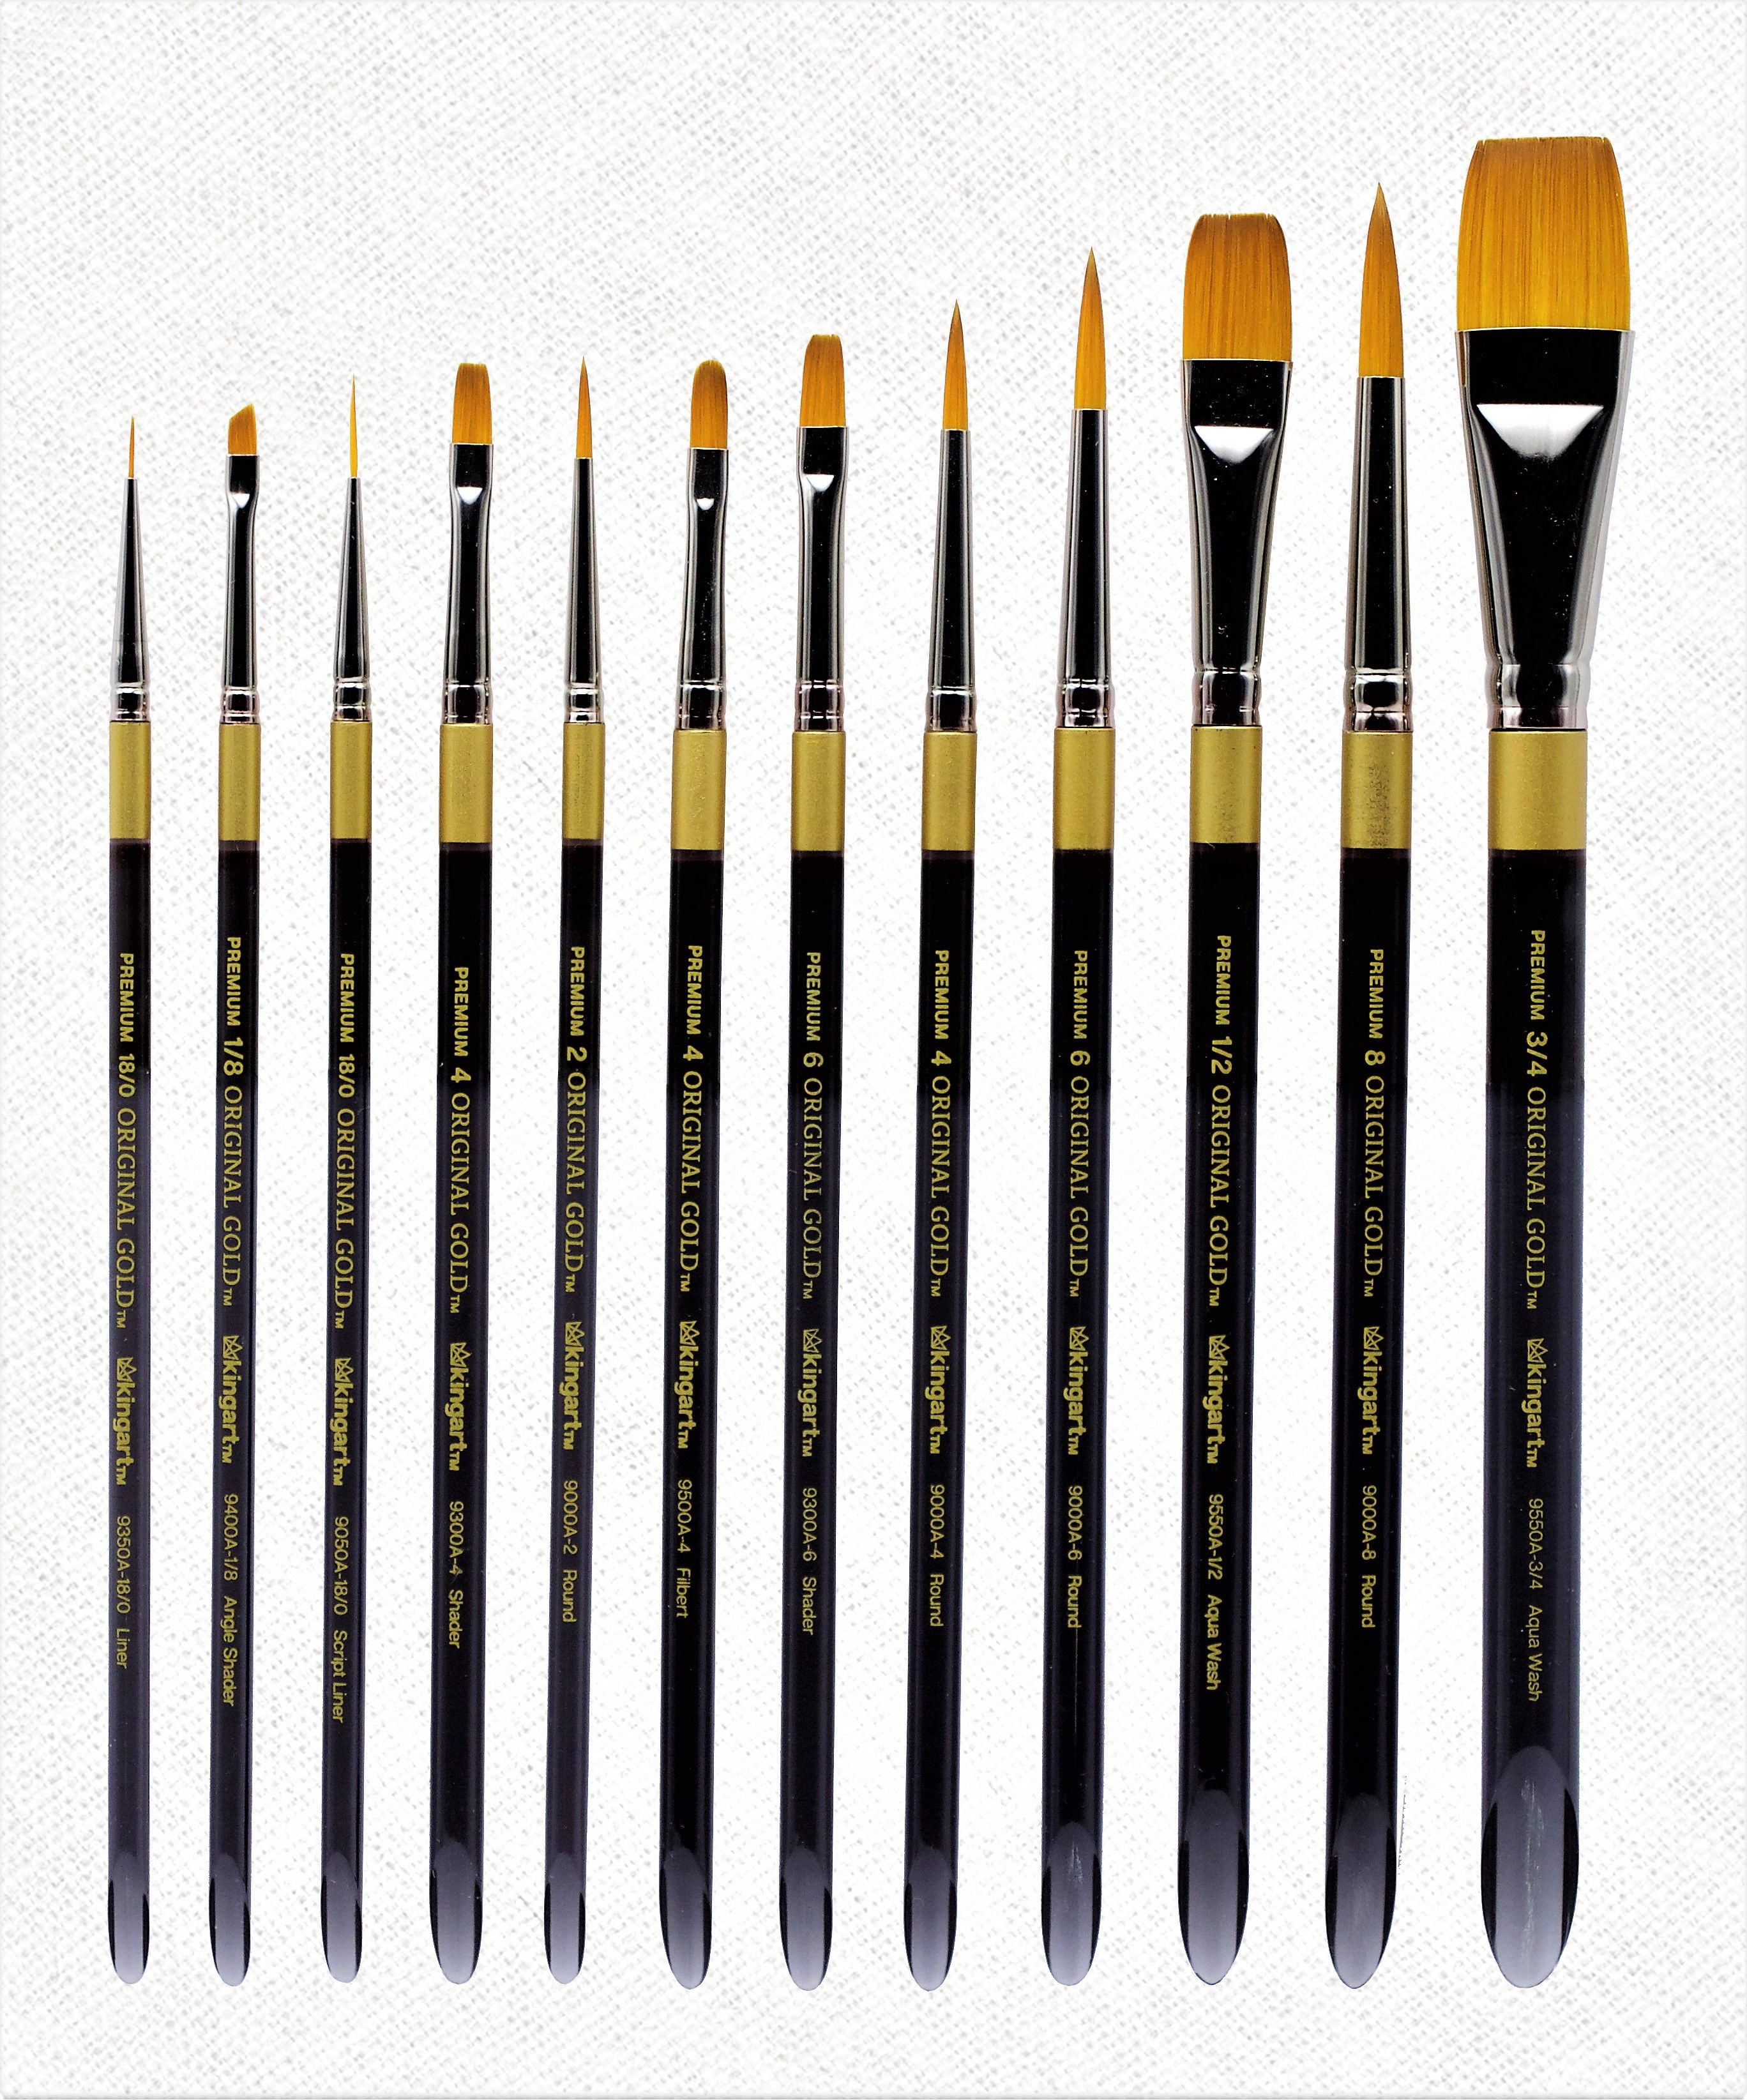 Winsor /& Newton Foundation WHITE Brush Set of 6 For Artists Oil /& Acrylic Paint